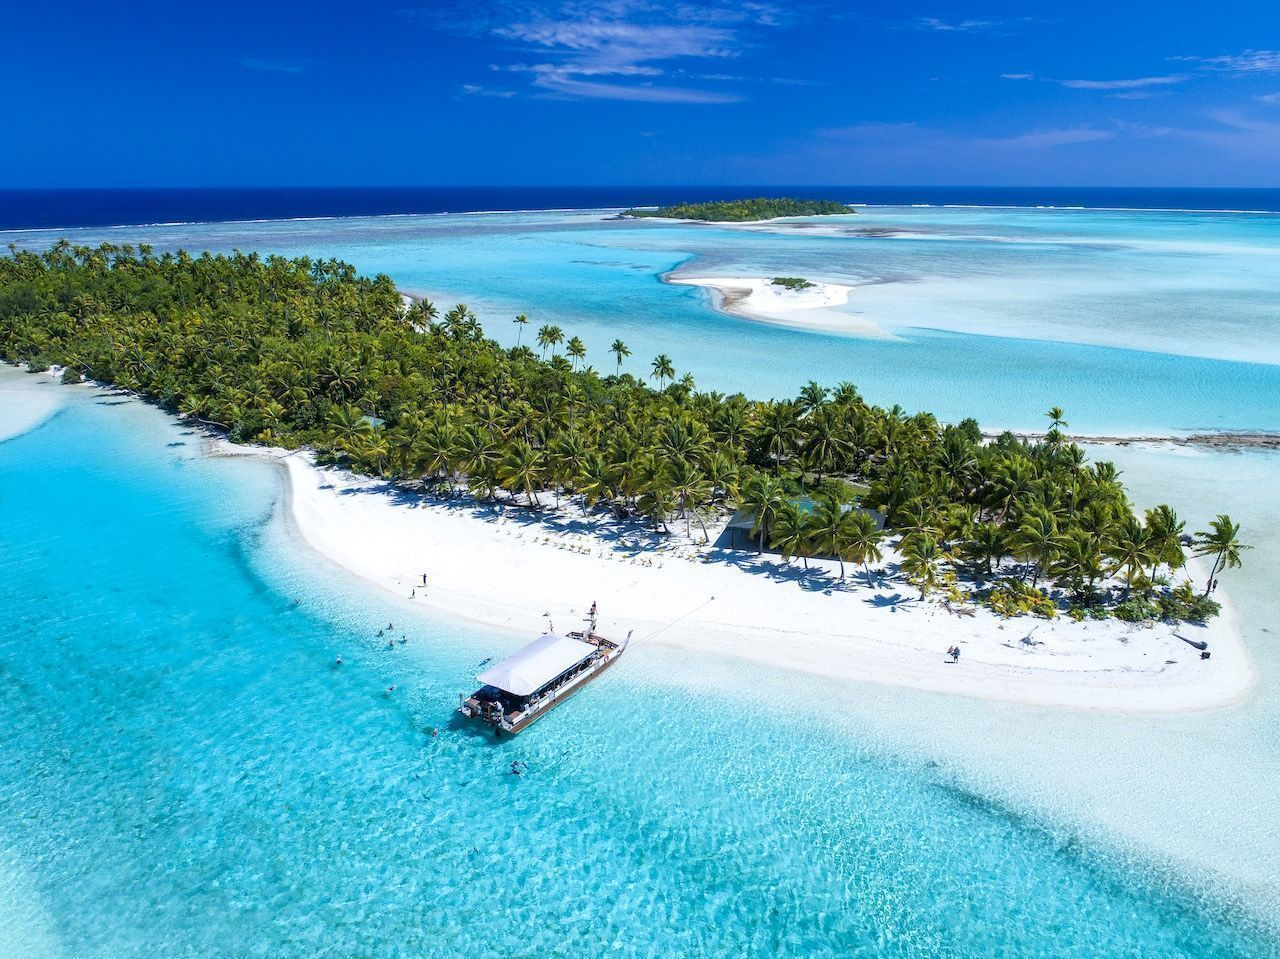 17 facts about the Cook Islands